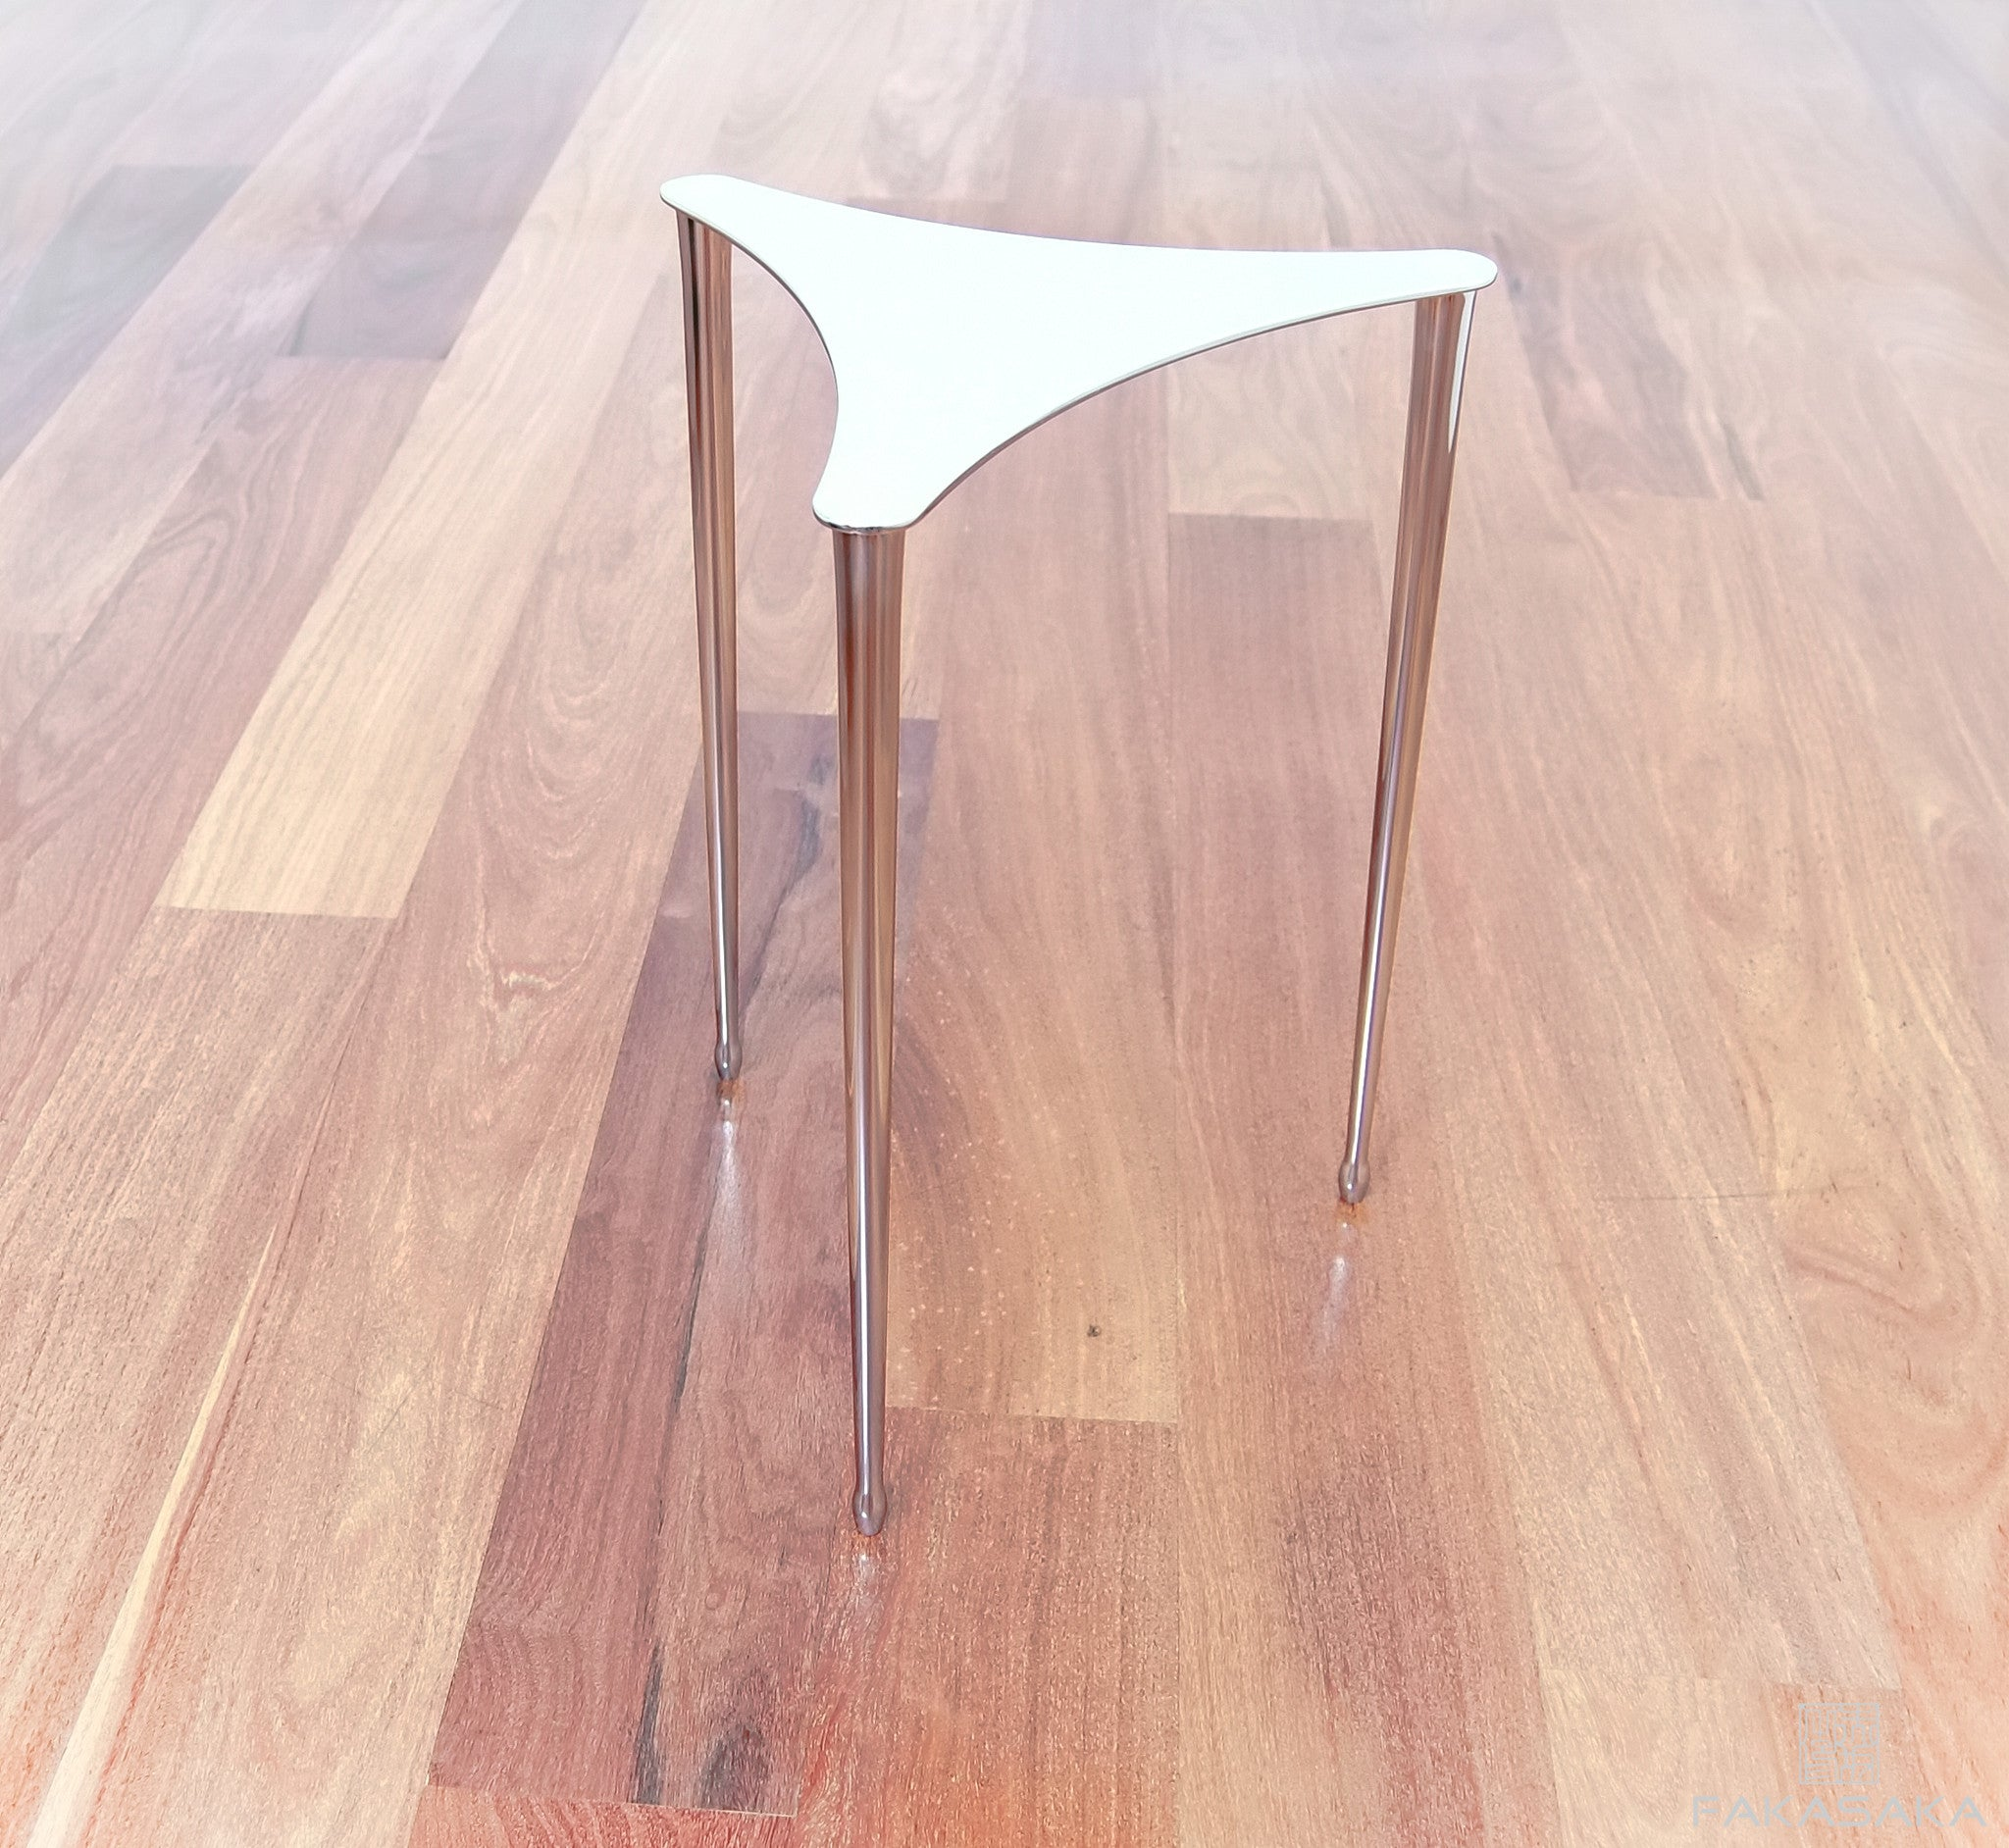 FA21 STOOL<br><br>STAINLESS STEEL